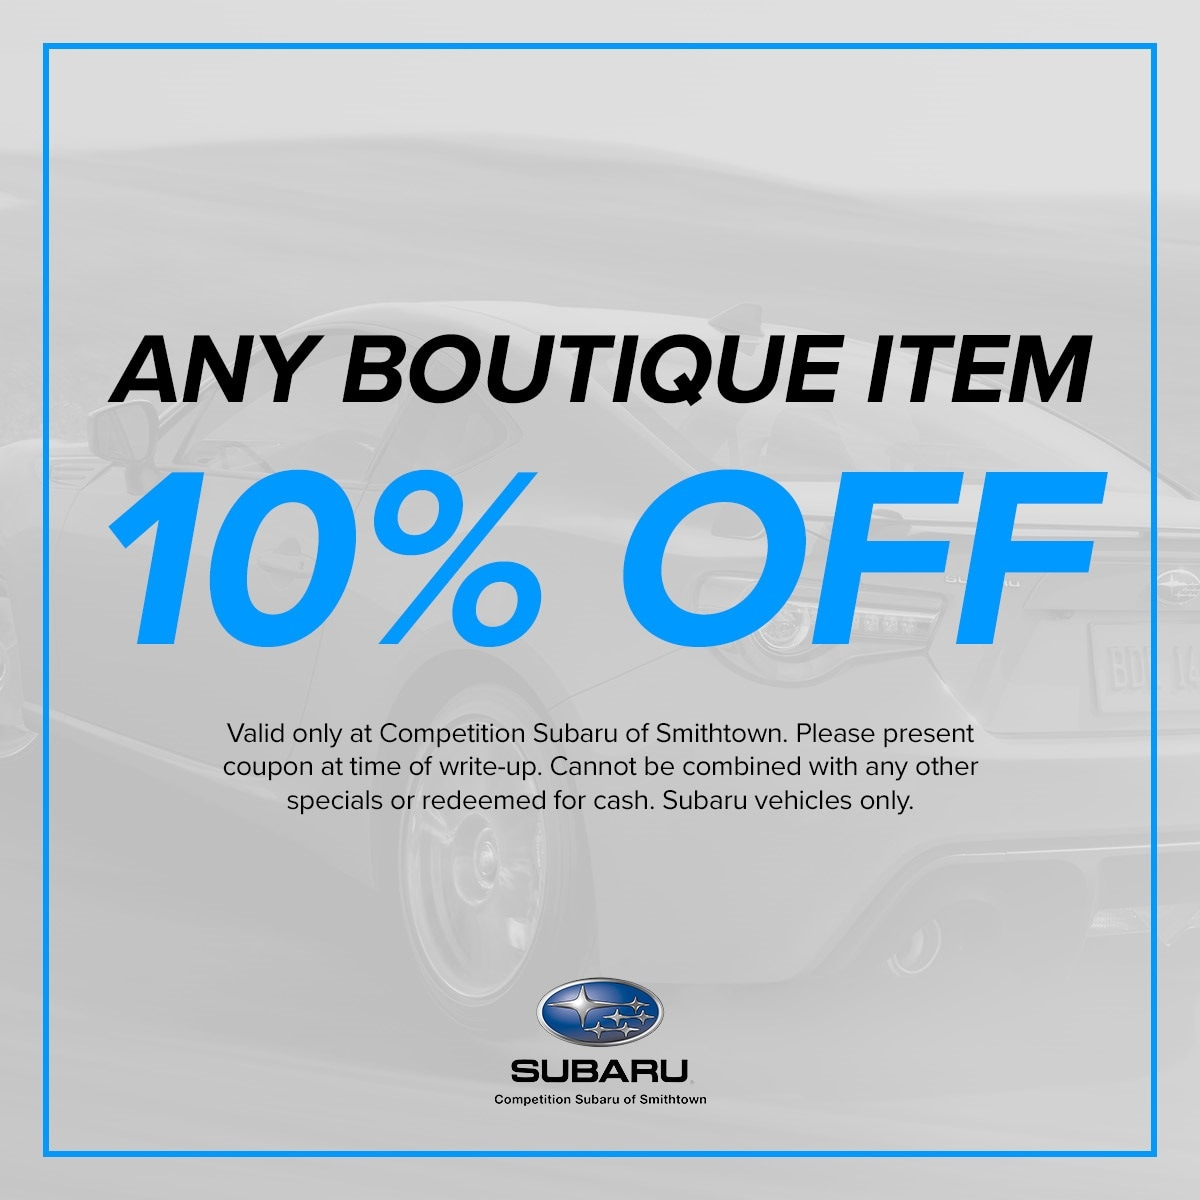 10% Off any Boutique Item